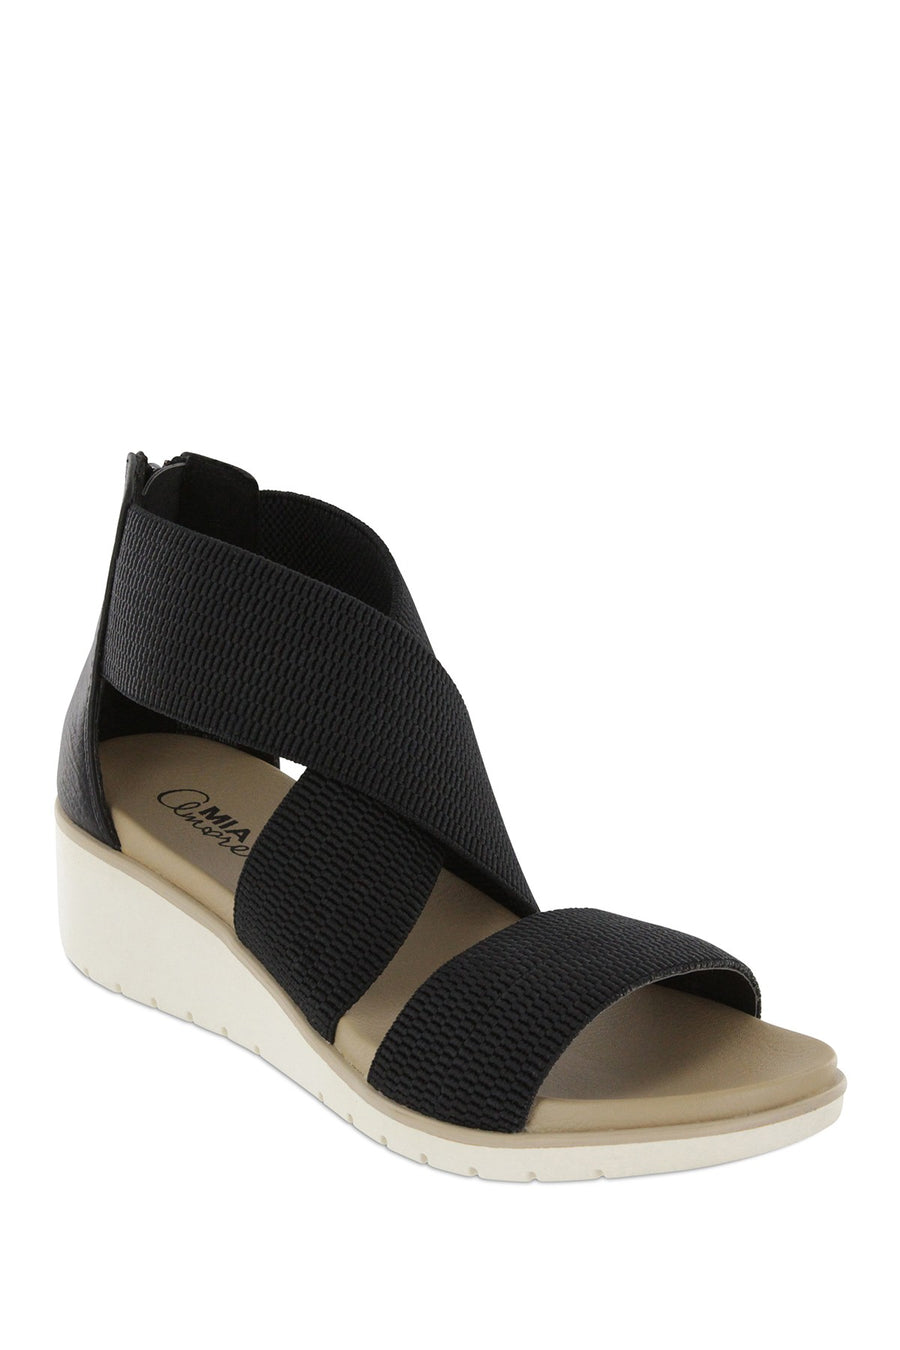 MIA Casandra Cross Strap Wedge Sandal